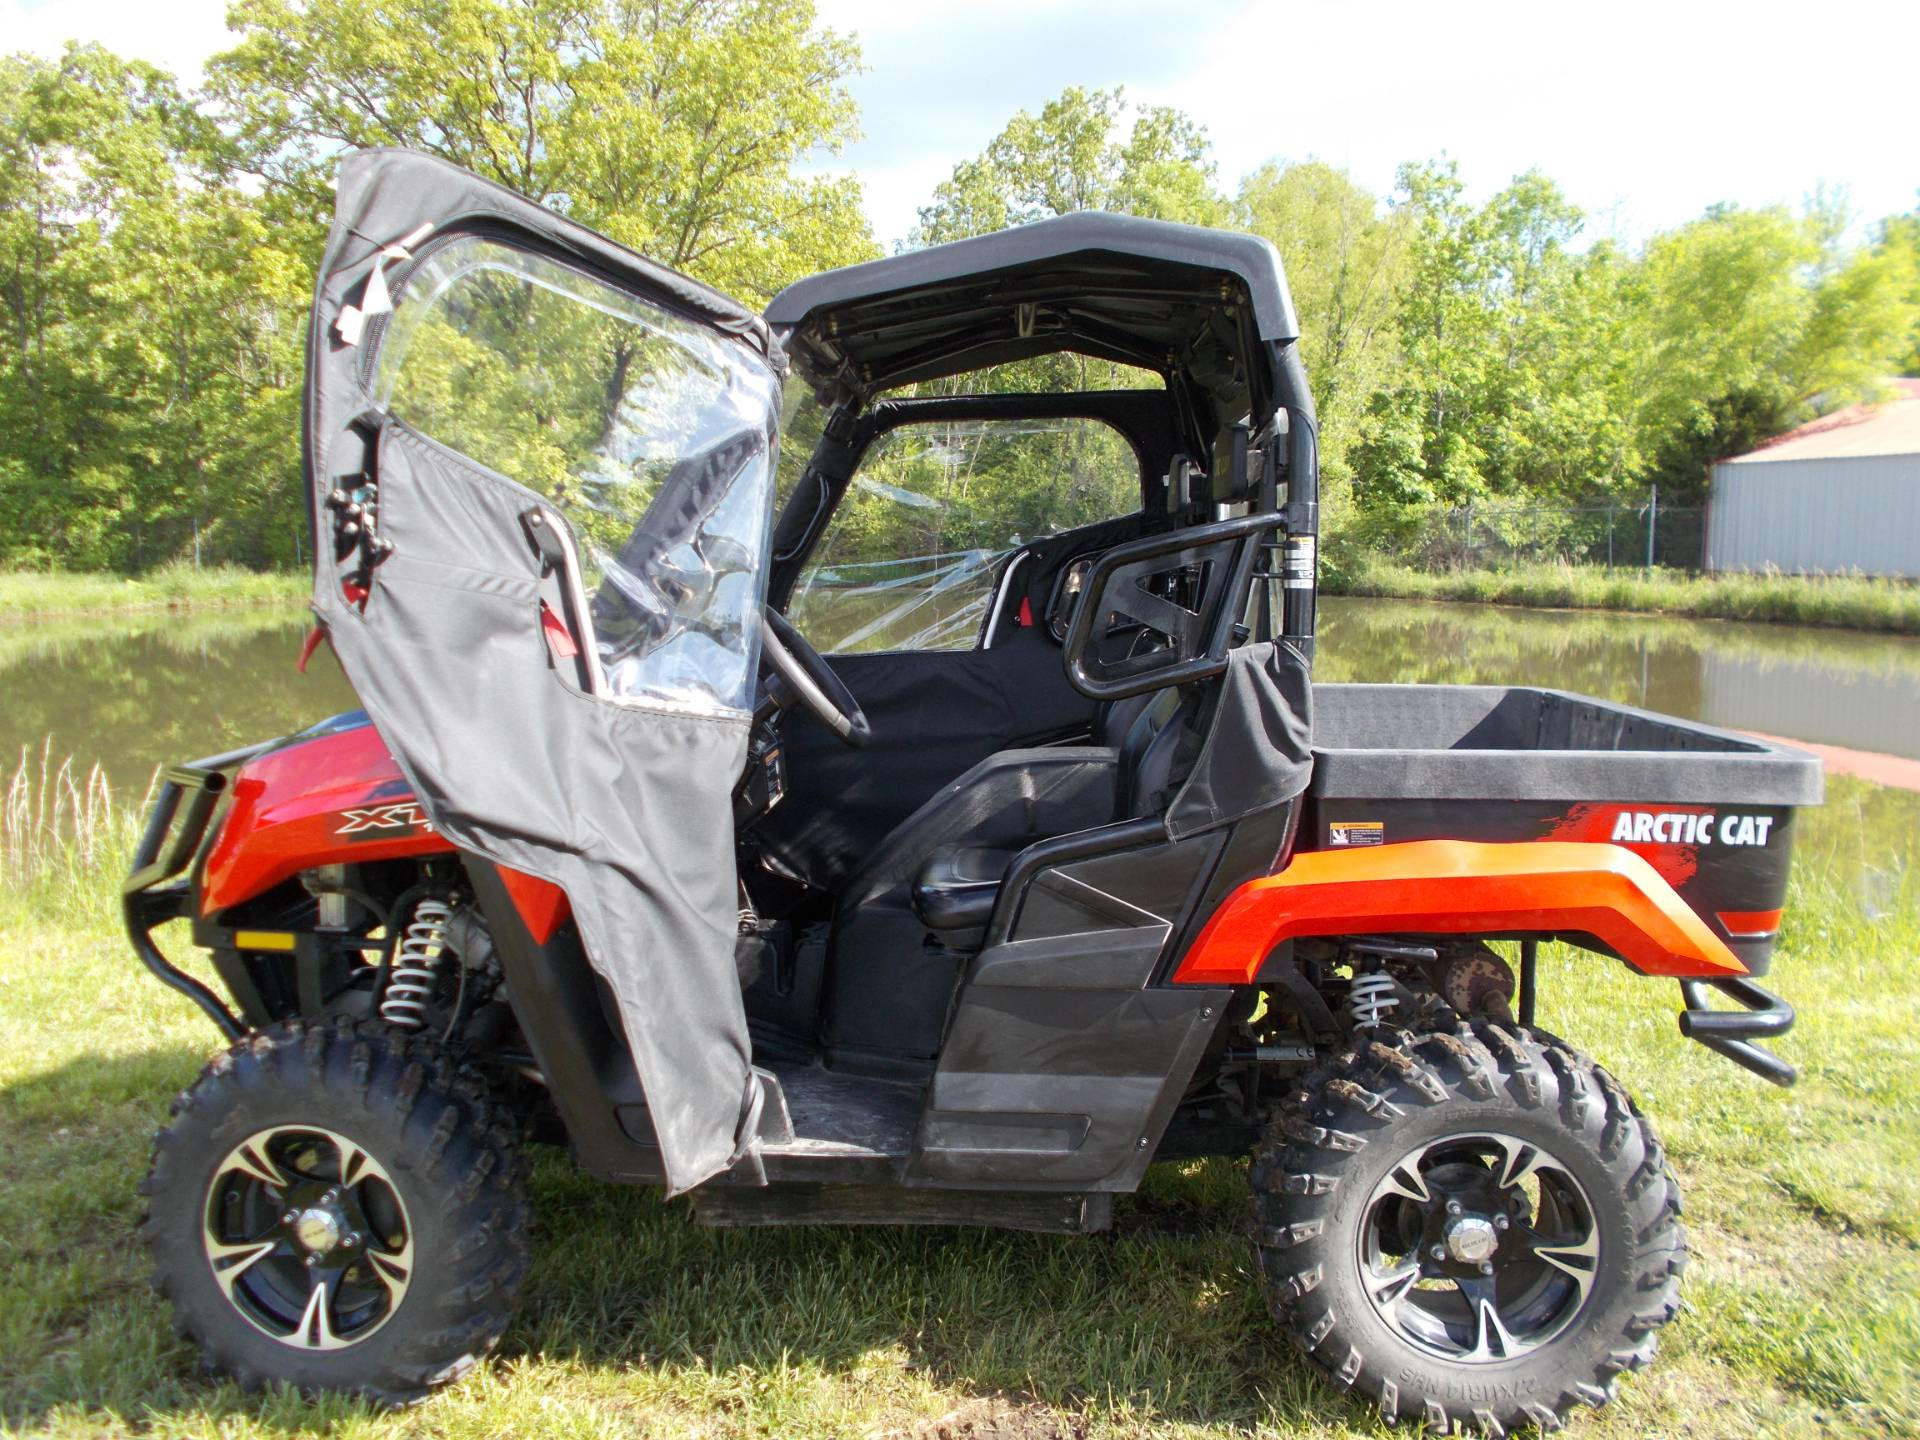 2015 Arctic Cat PROWLER 1000 XTZ WITH ALL THE EXTRAS in West Plains, Missouri - Photo 16